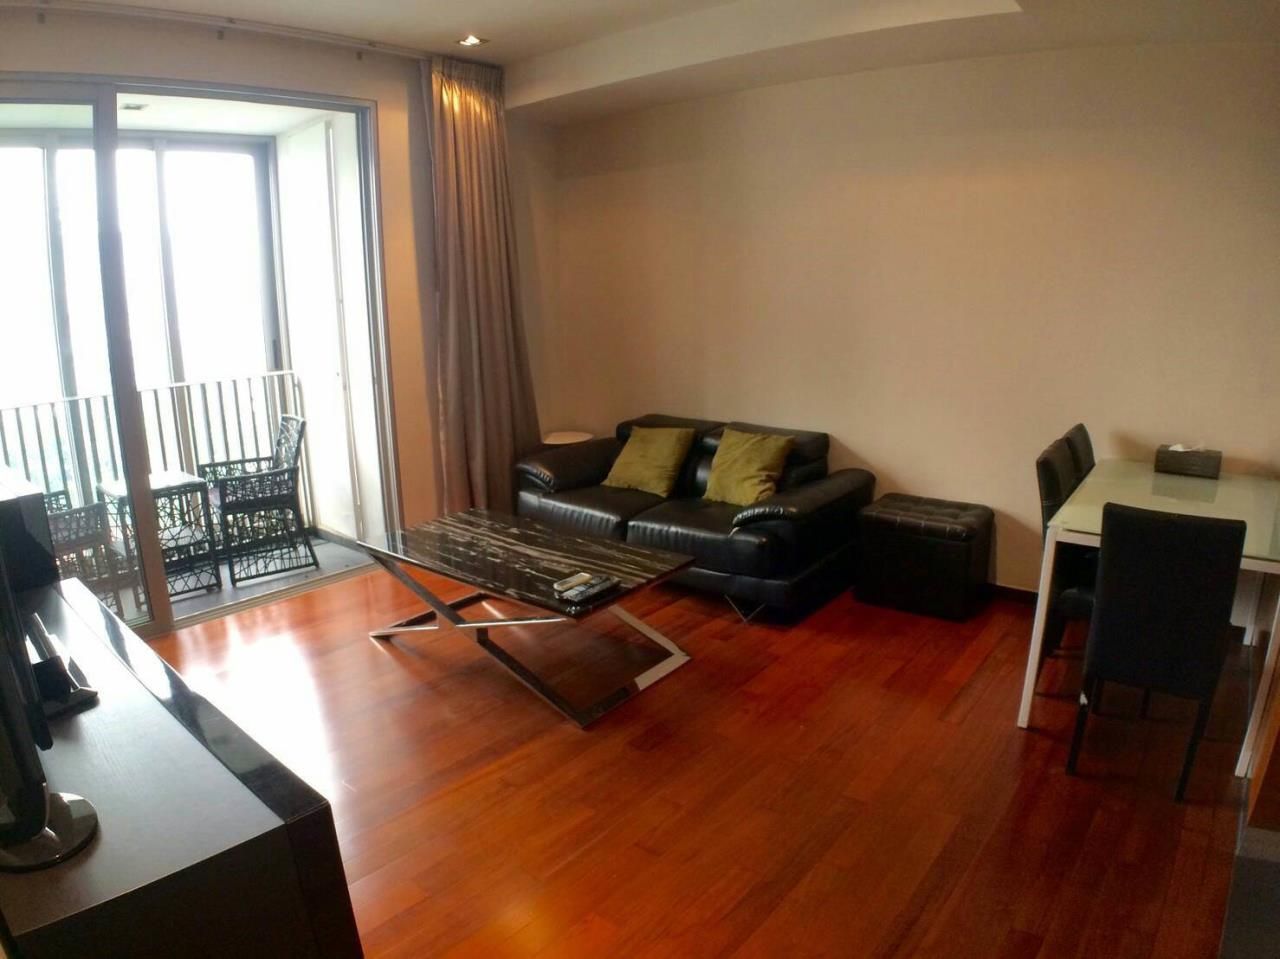 SALA ESTATE Agency's Ashton Morph Sukhumvit 38 - BTS Thonglor - Pets allows, Free shuttle service. 2